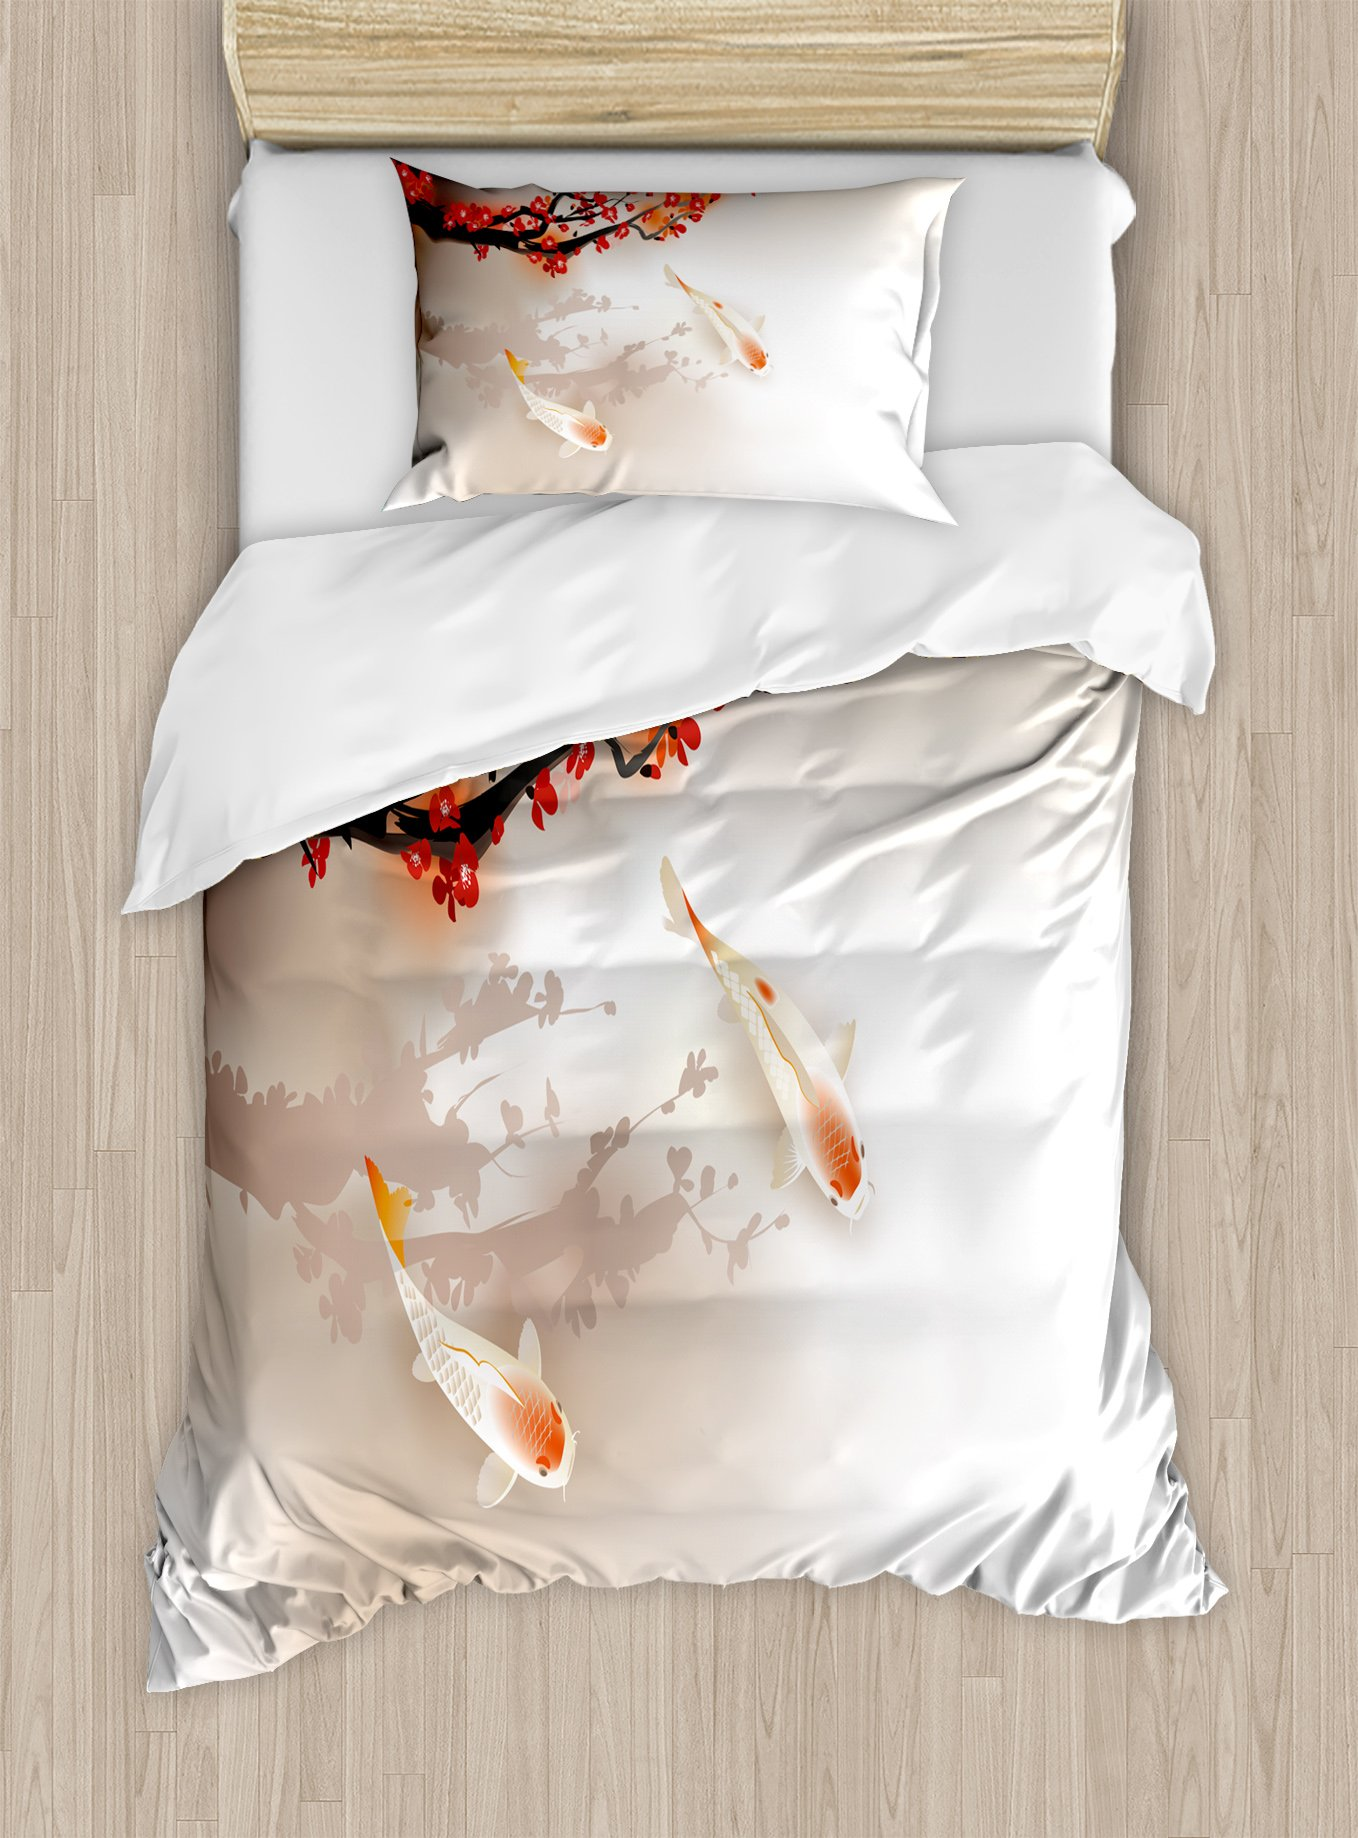 Lunarable Koi Fish Duvet Cover Set Twin Size, Sakura Branch and Leaves Sacred Animals in Small Body of Water Oriental Style, Decorative 2 Piece Bedding Set with 1 Pillow Sham, Peach Black Red